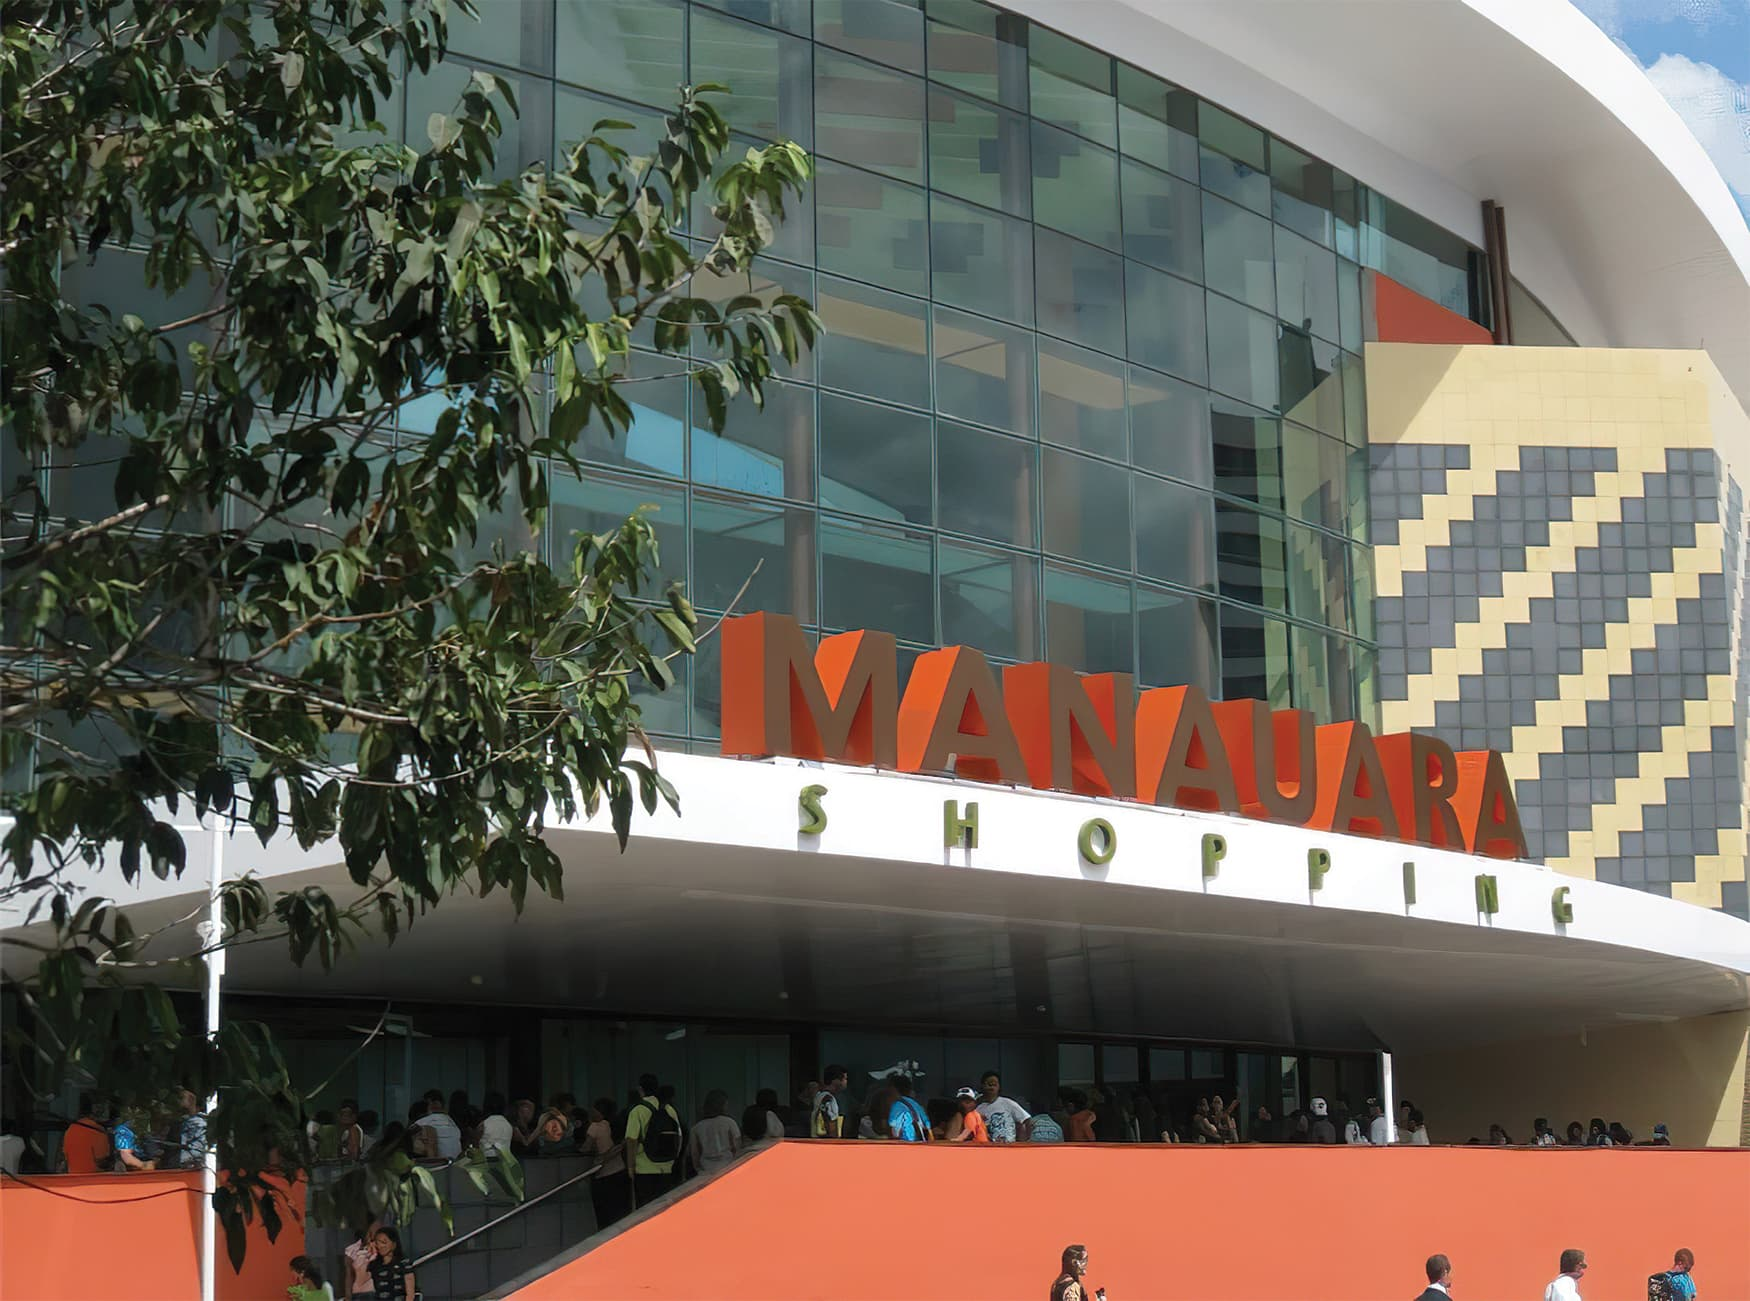 Manauara Shopping, a retail destination project located in Brazil. Canopy Signage. Project Identity Signage.